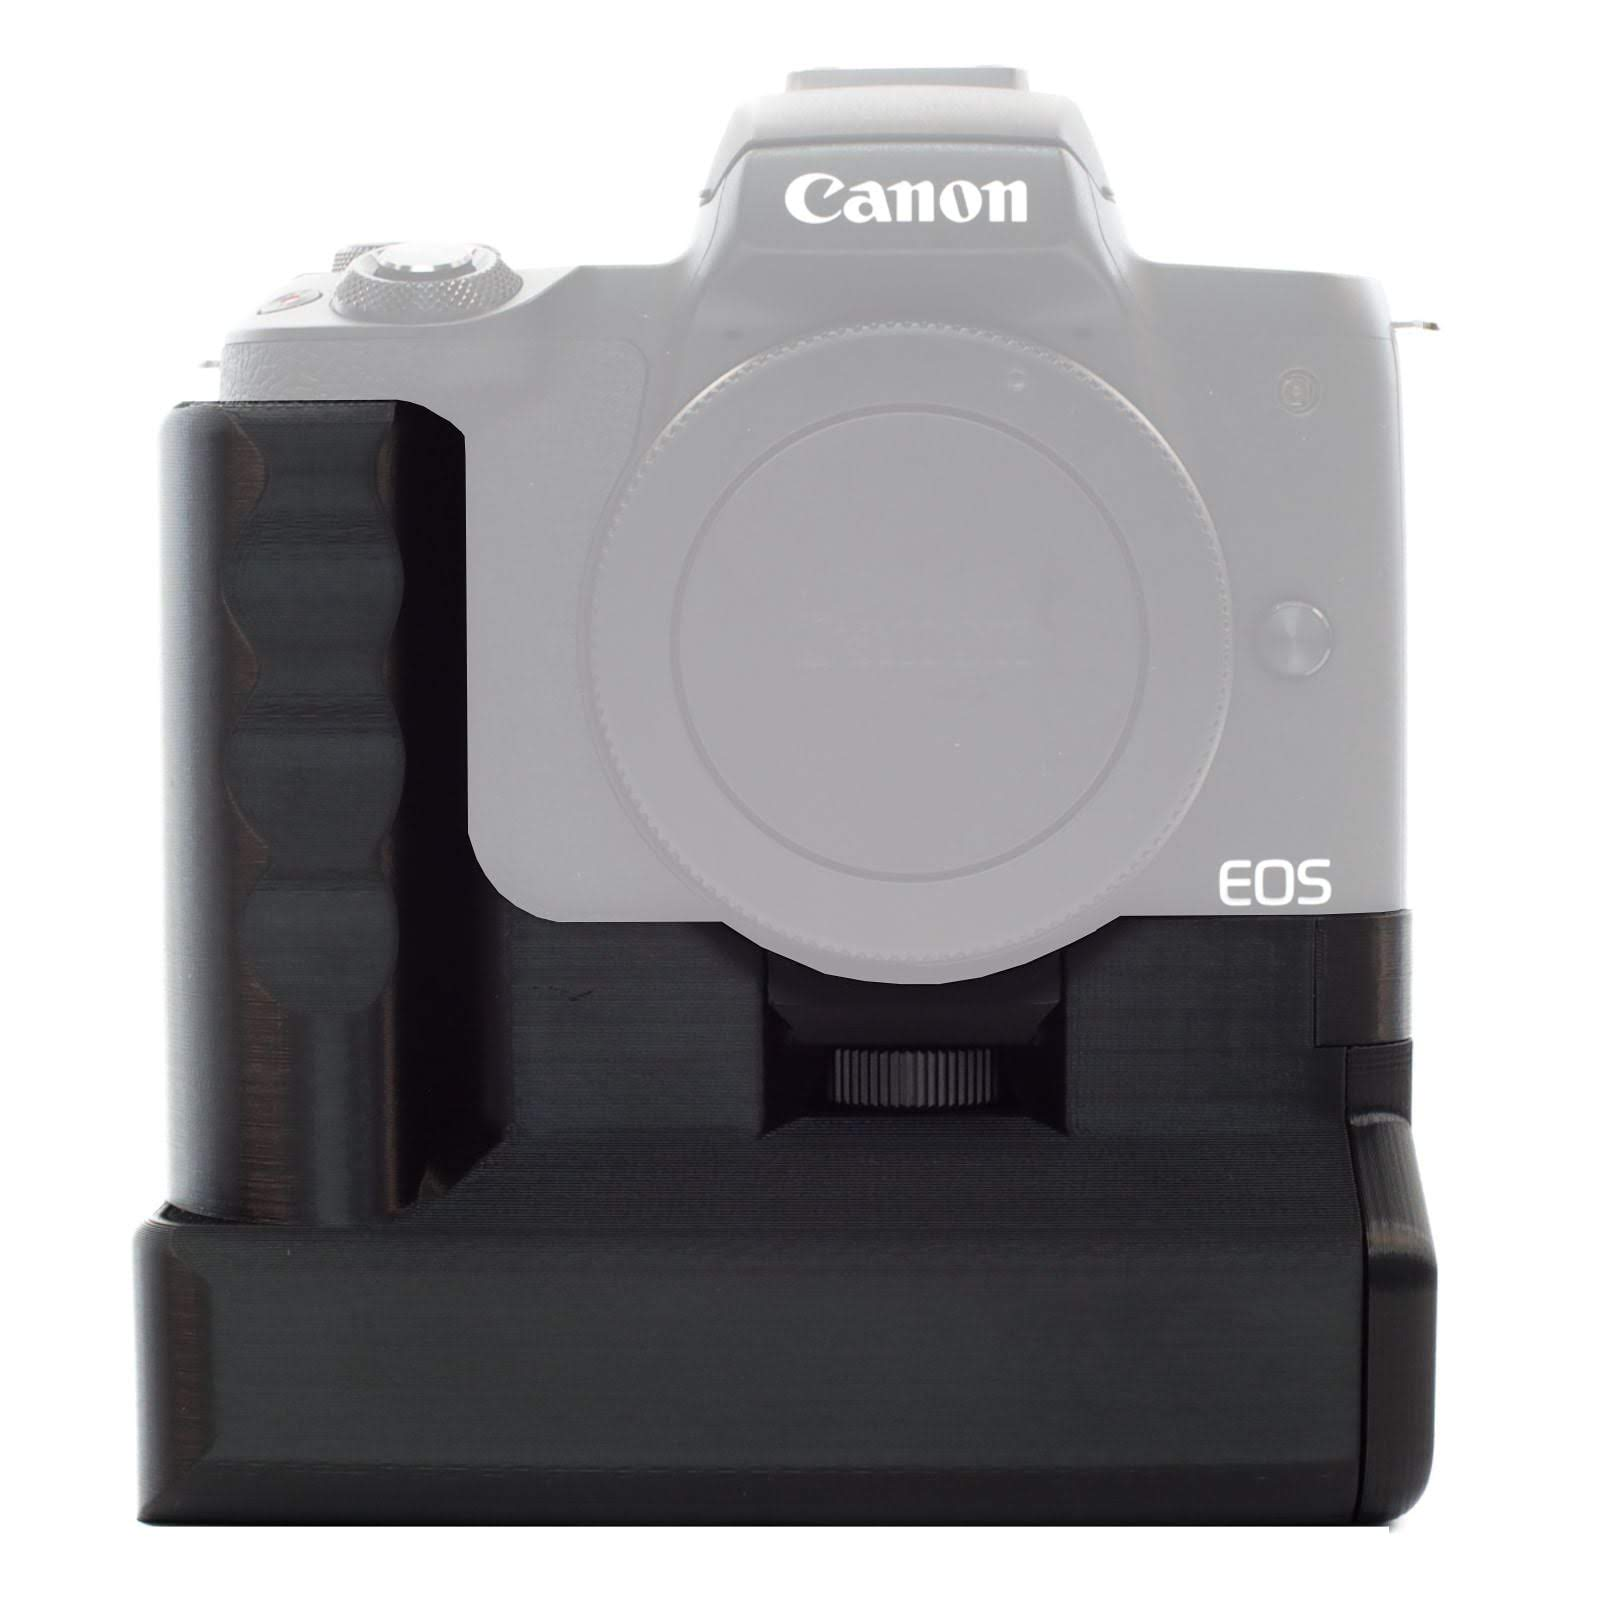 Battery Grip for Canon EOS M50 by CustomBatteryGrips available @ our online store